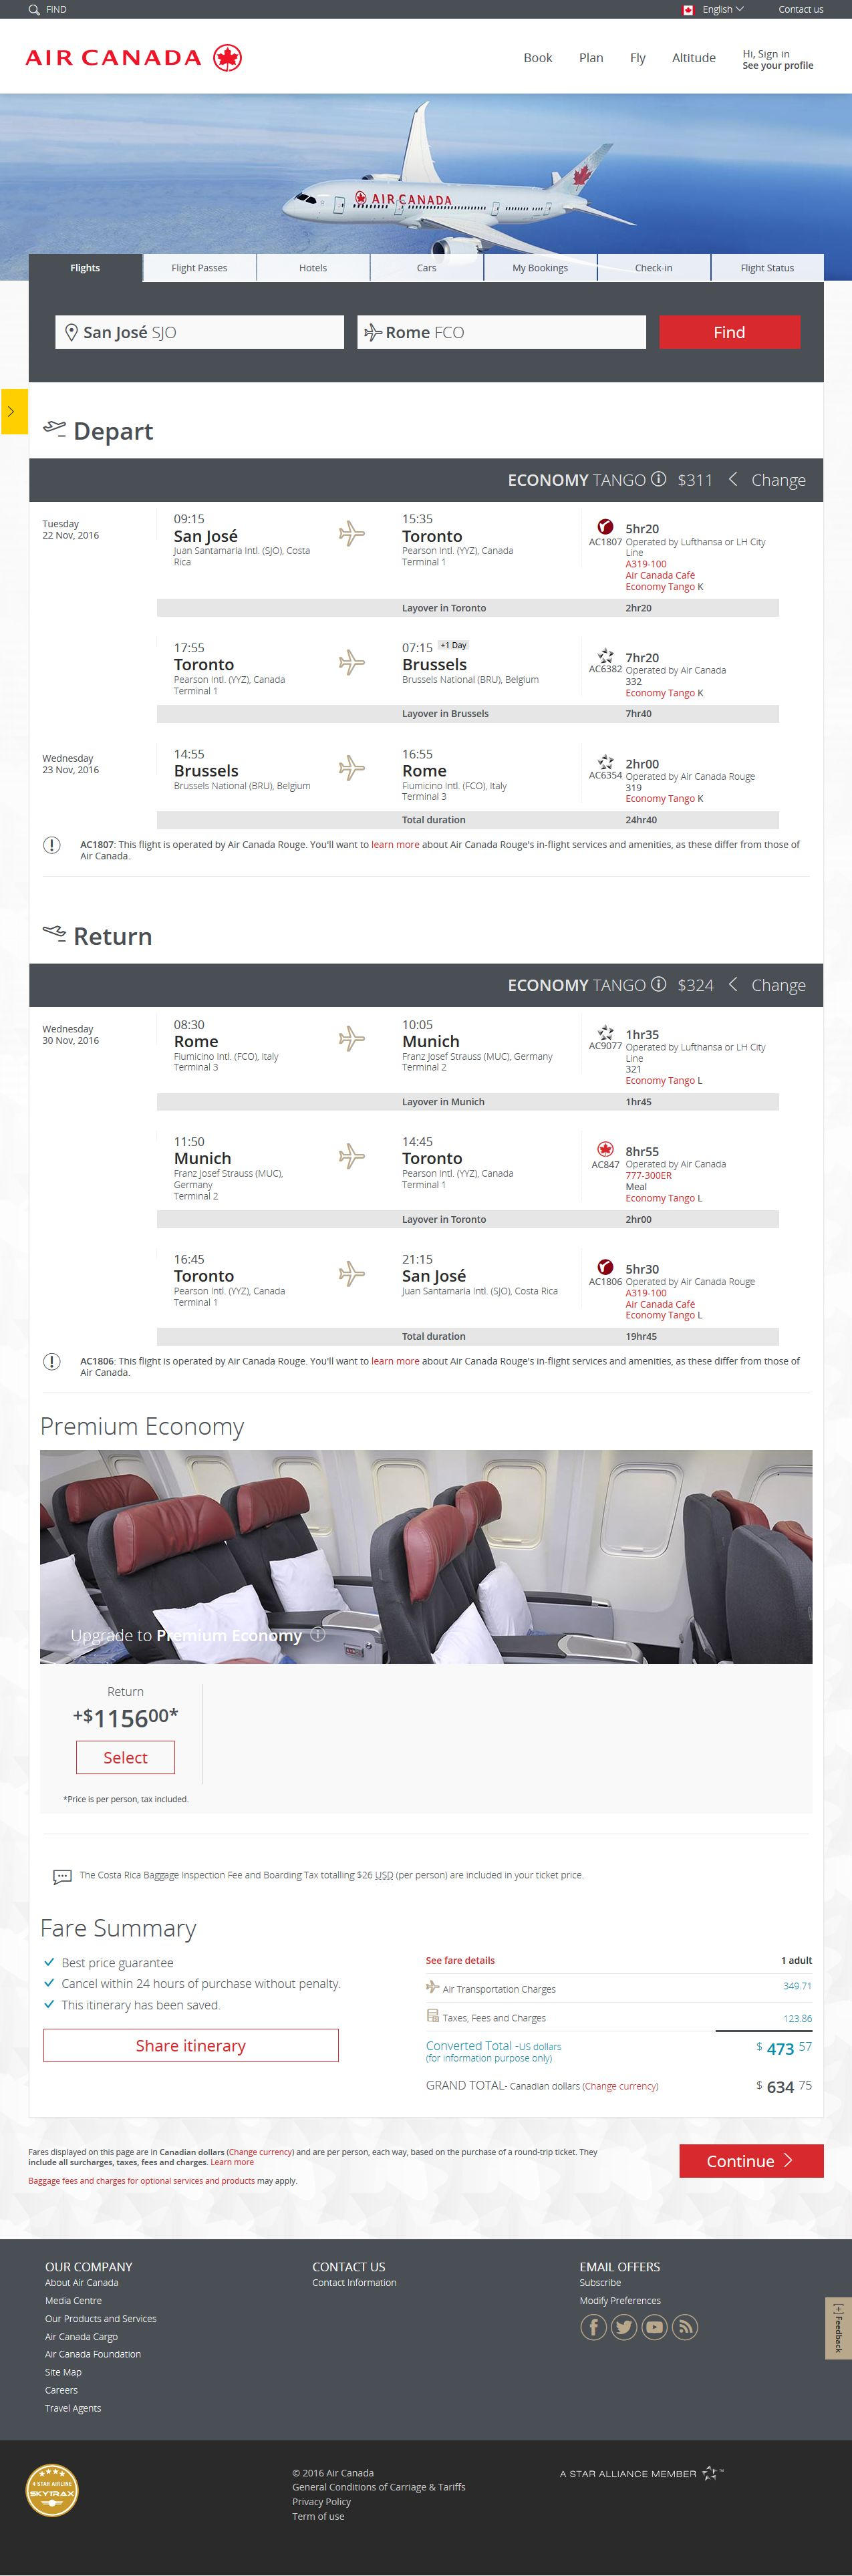 Screenshot of Air Canada reservation for fligth between San Jose and Rome, departing November 22 and returning November 29